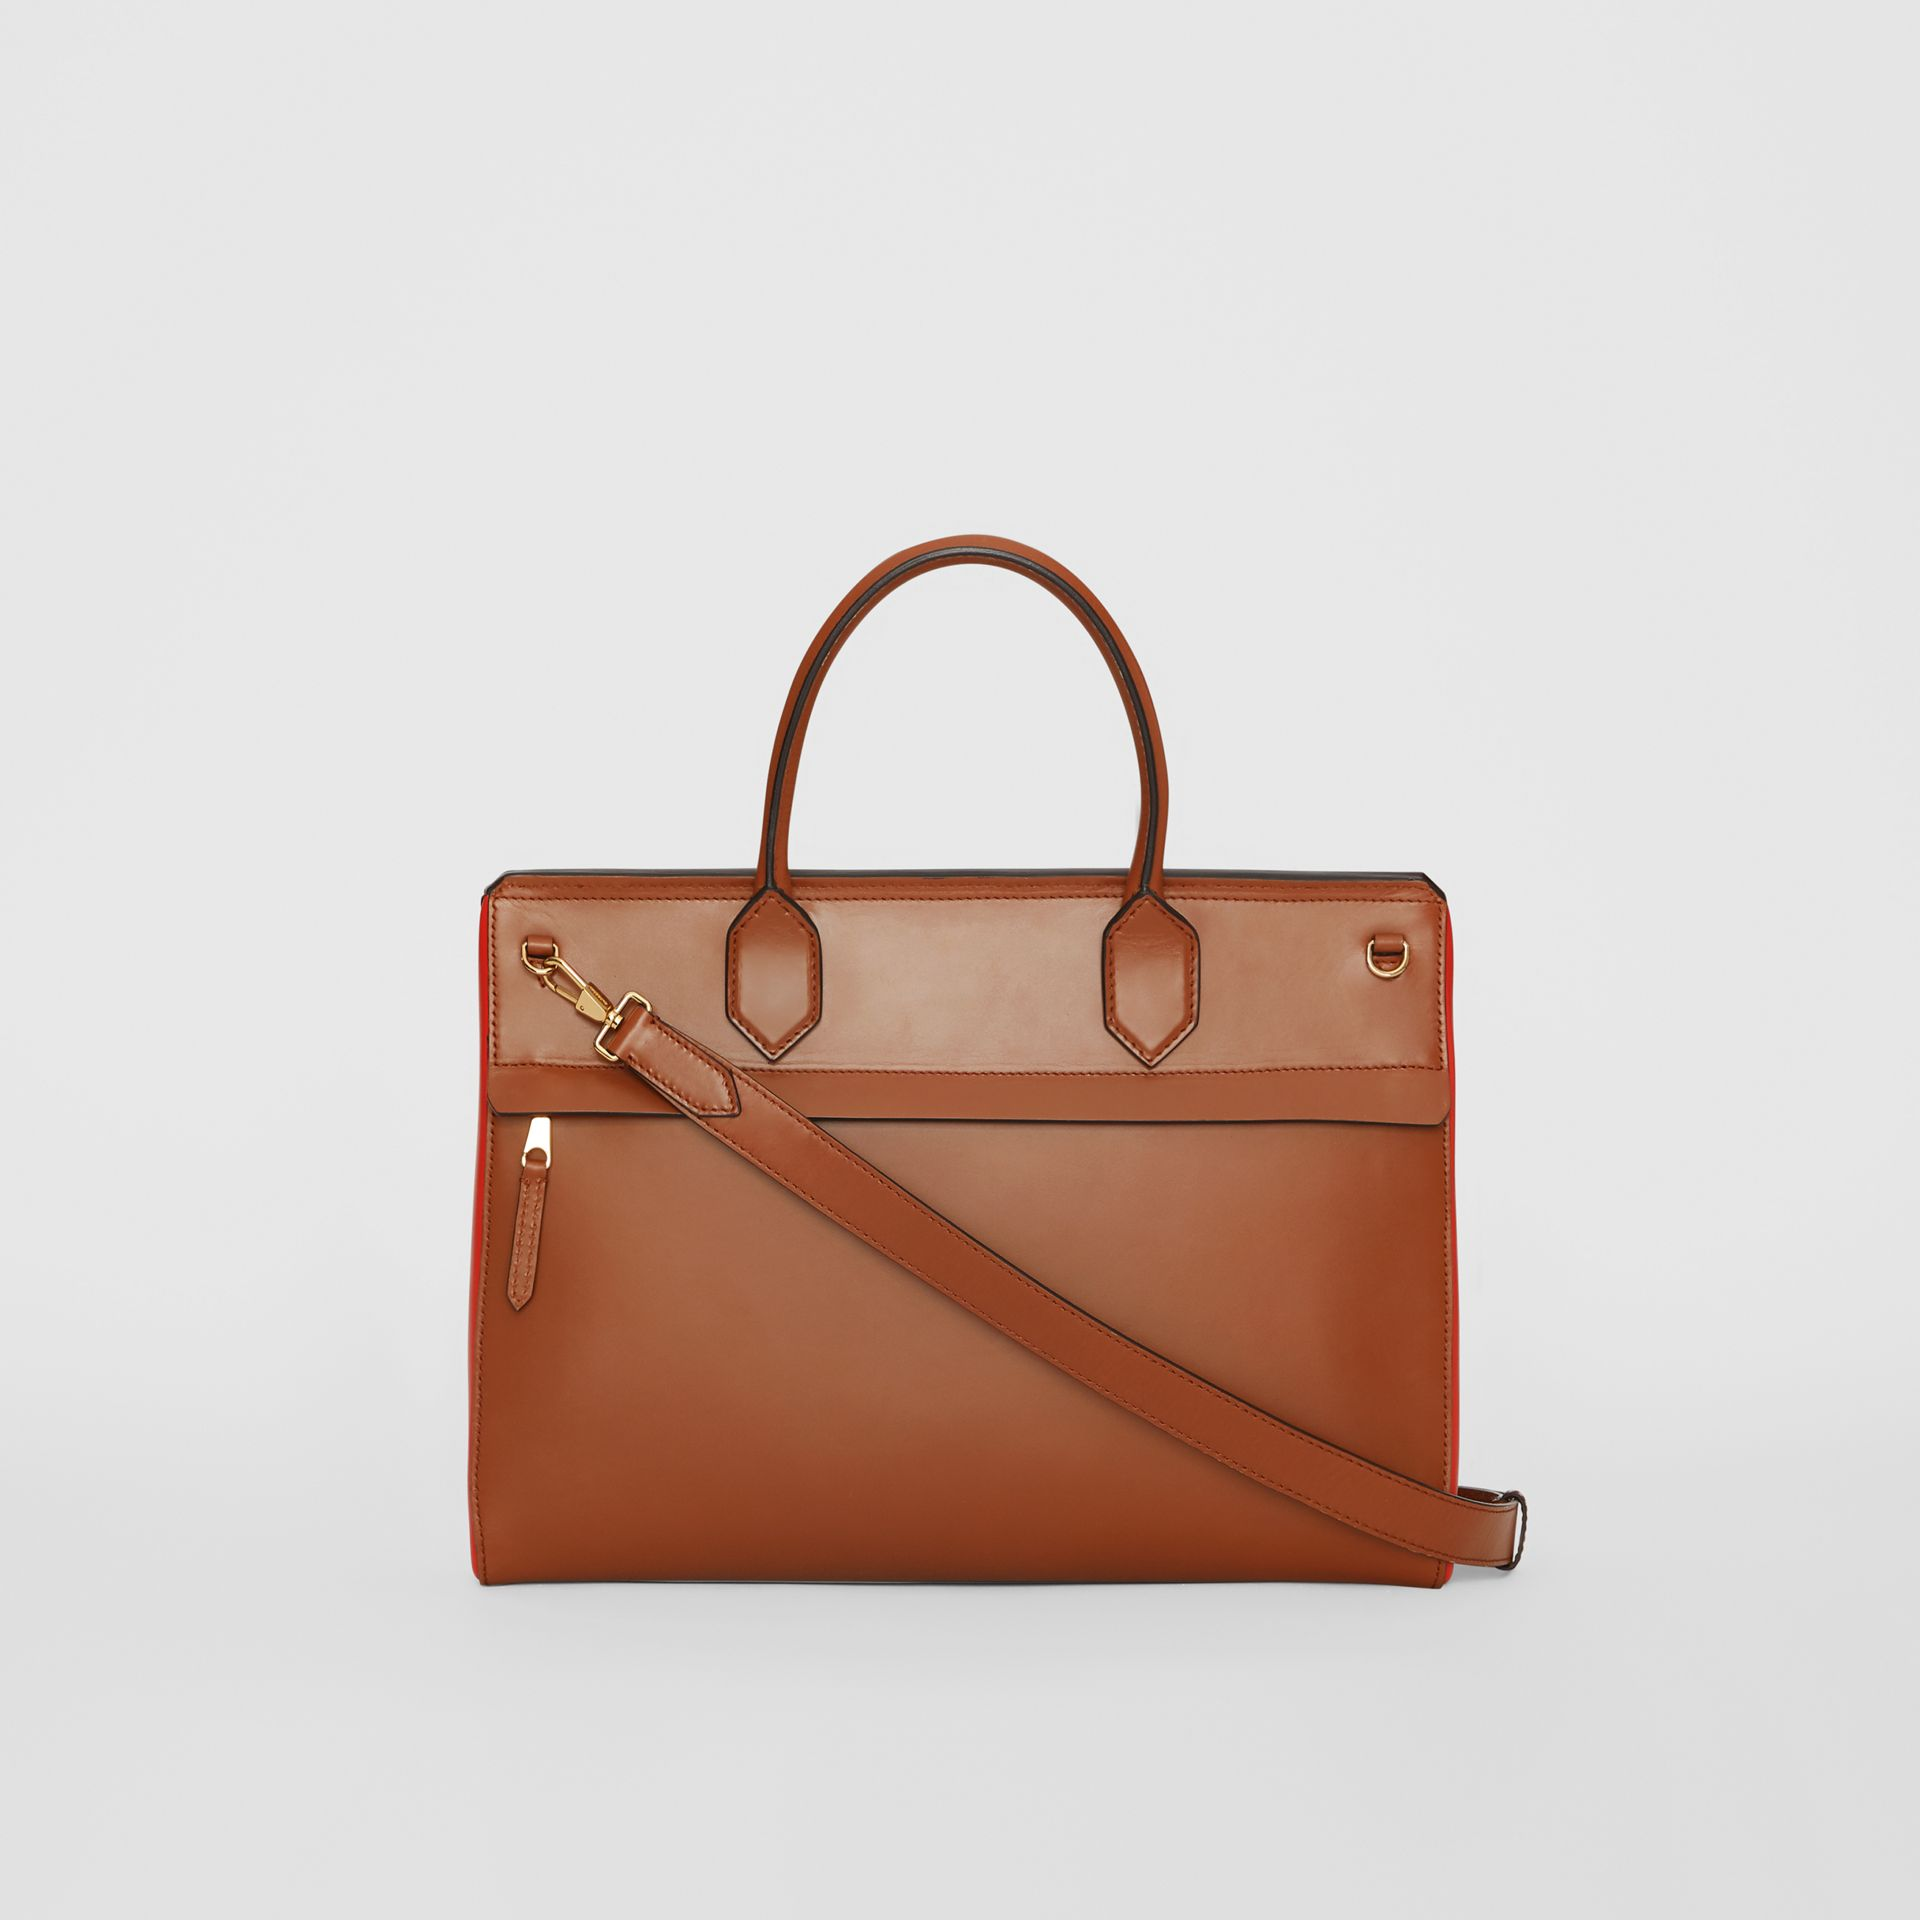 Medium Leather Elizabeth Bag in Malt Brown - Women | Burberry - gallery image 6